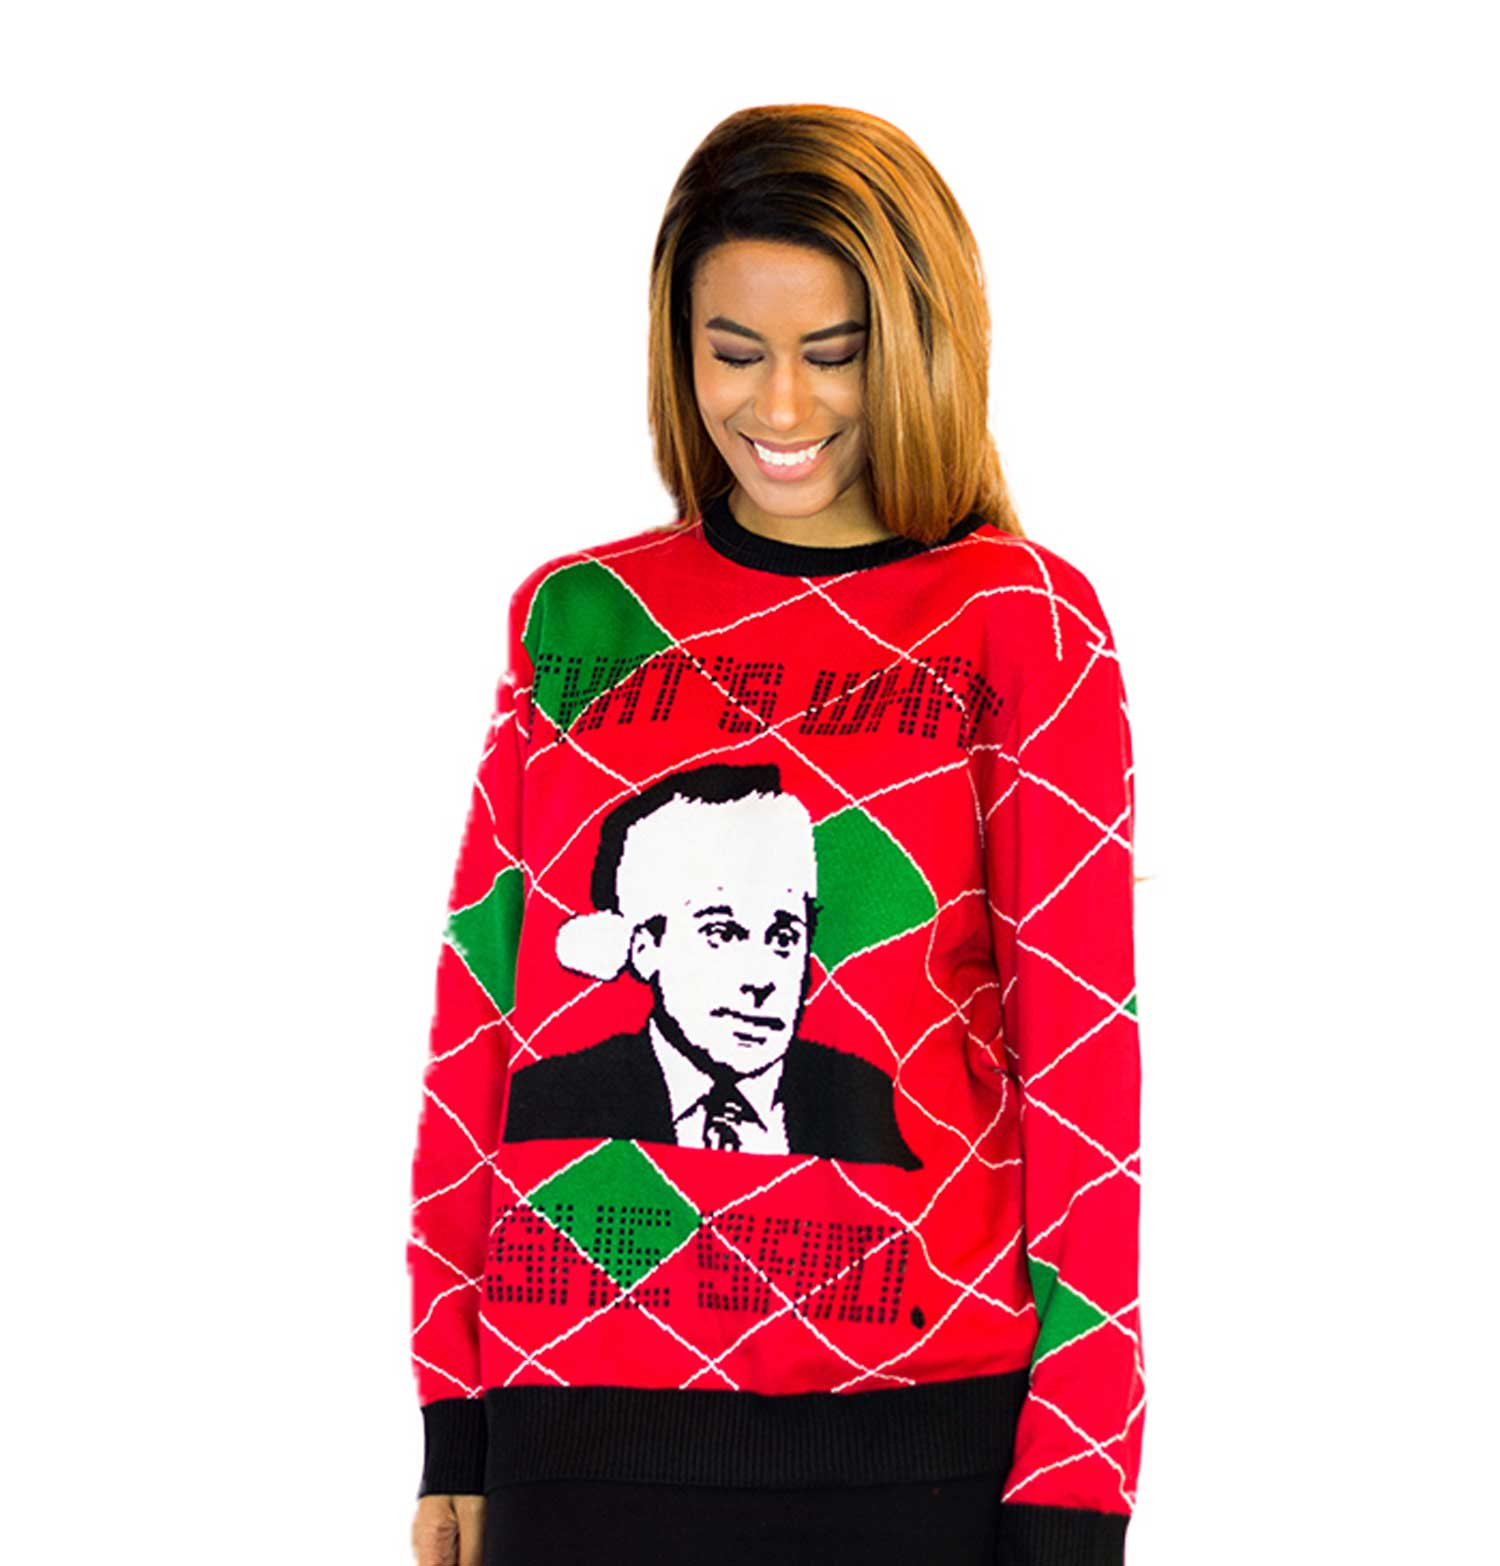 Buddy The Elf Ugly Christmas Sweater Unisex Getuglysweaterscom